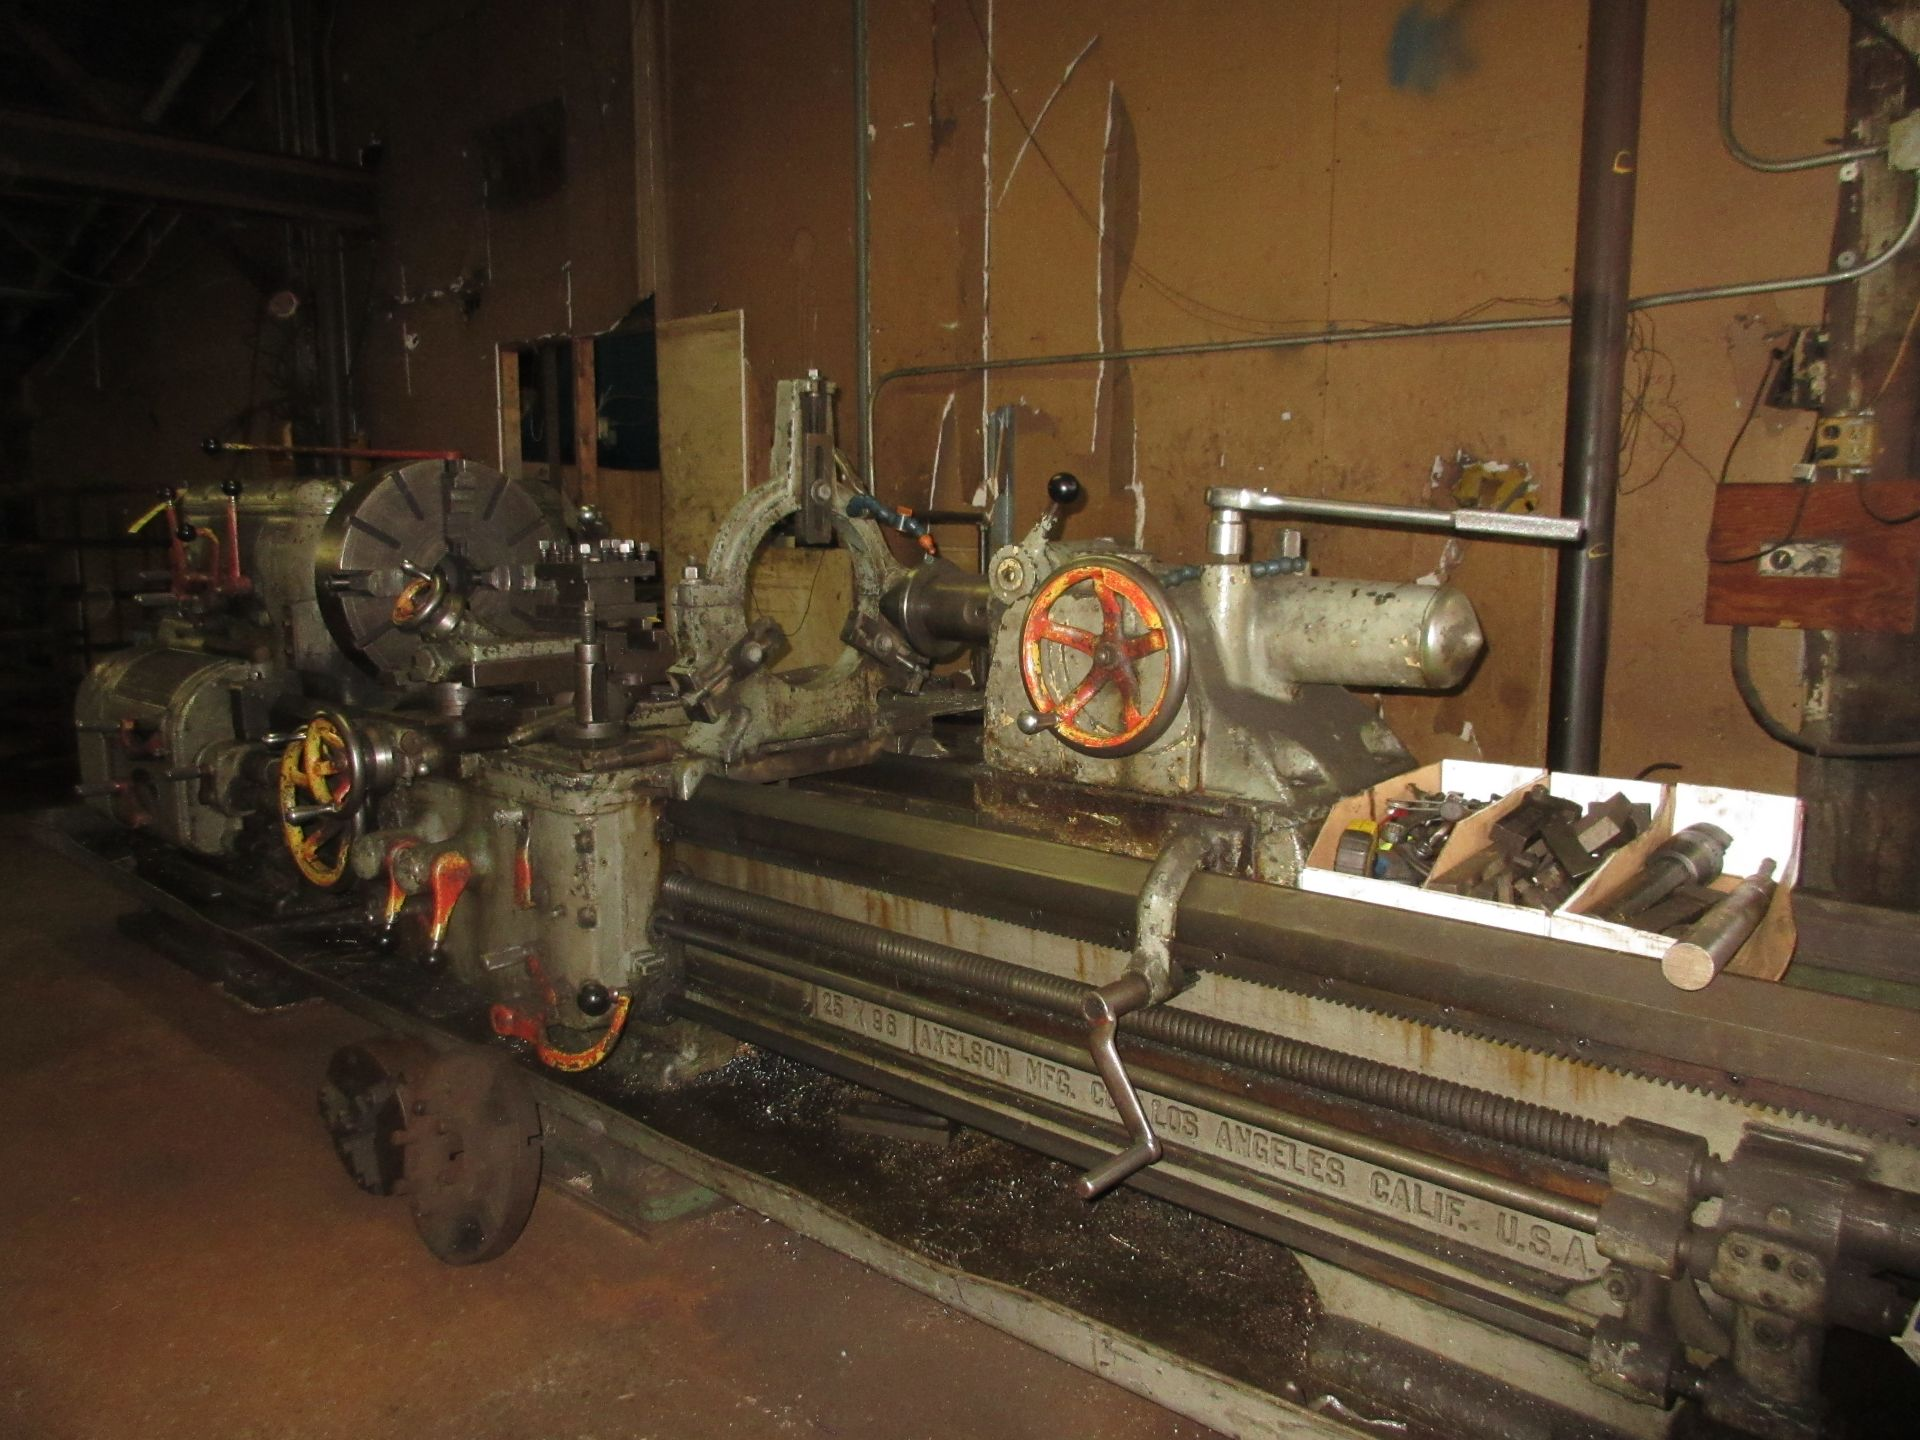 """(1) Axelson 25"""" X 96"""" Lathe S/N 24"""" 4 Jaw Chuck, Steady Rest & Taper Attachment, Tool Post - Image 4 of 5"""